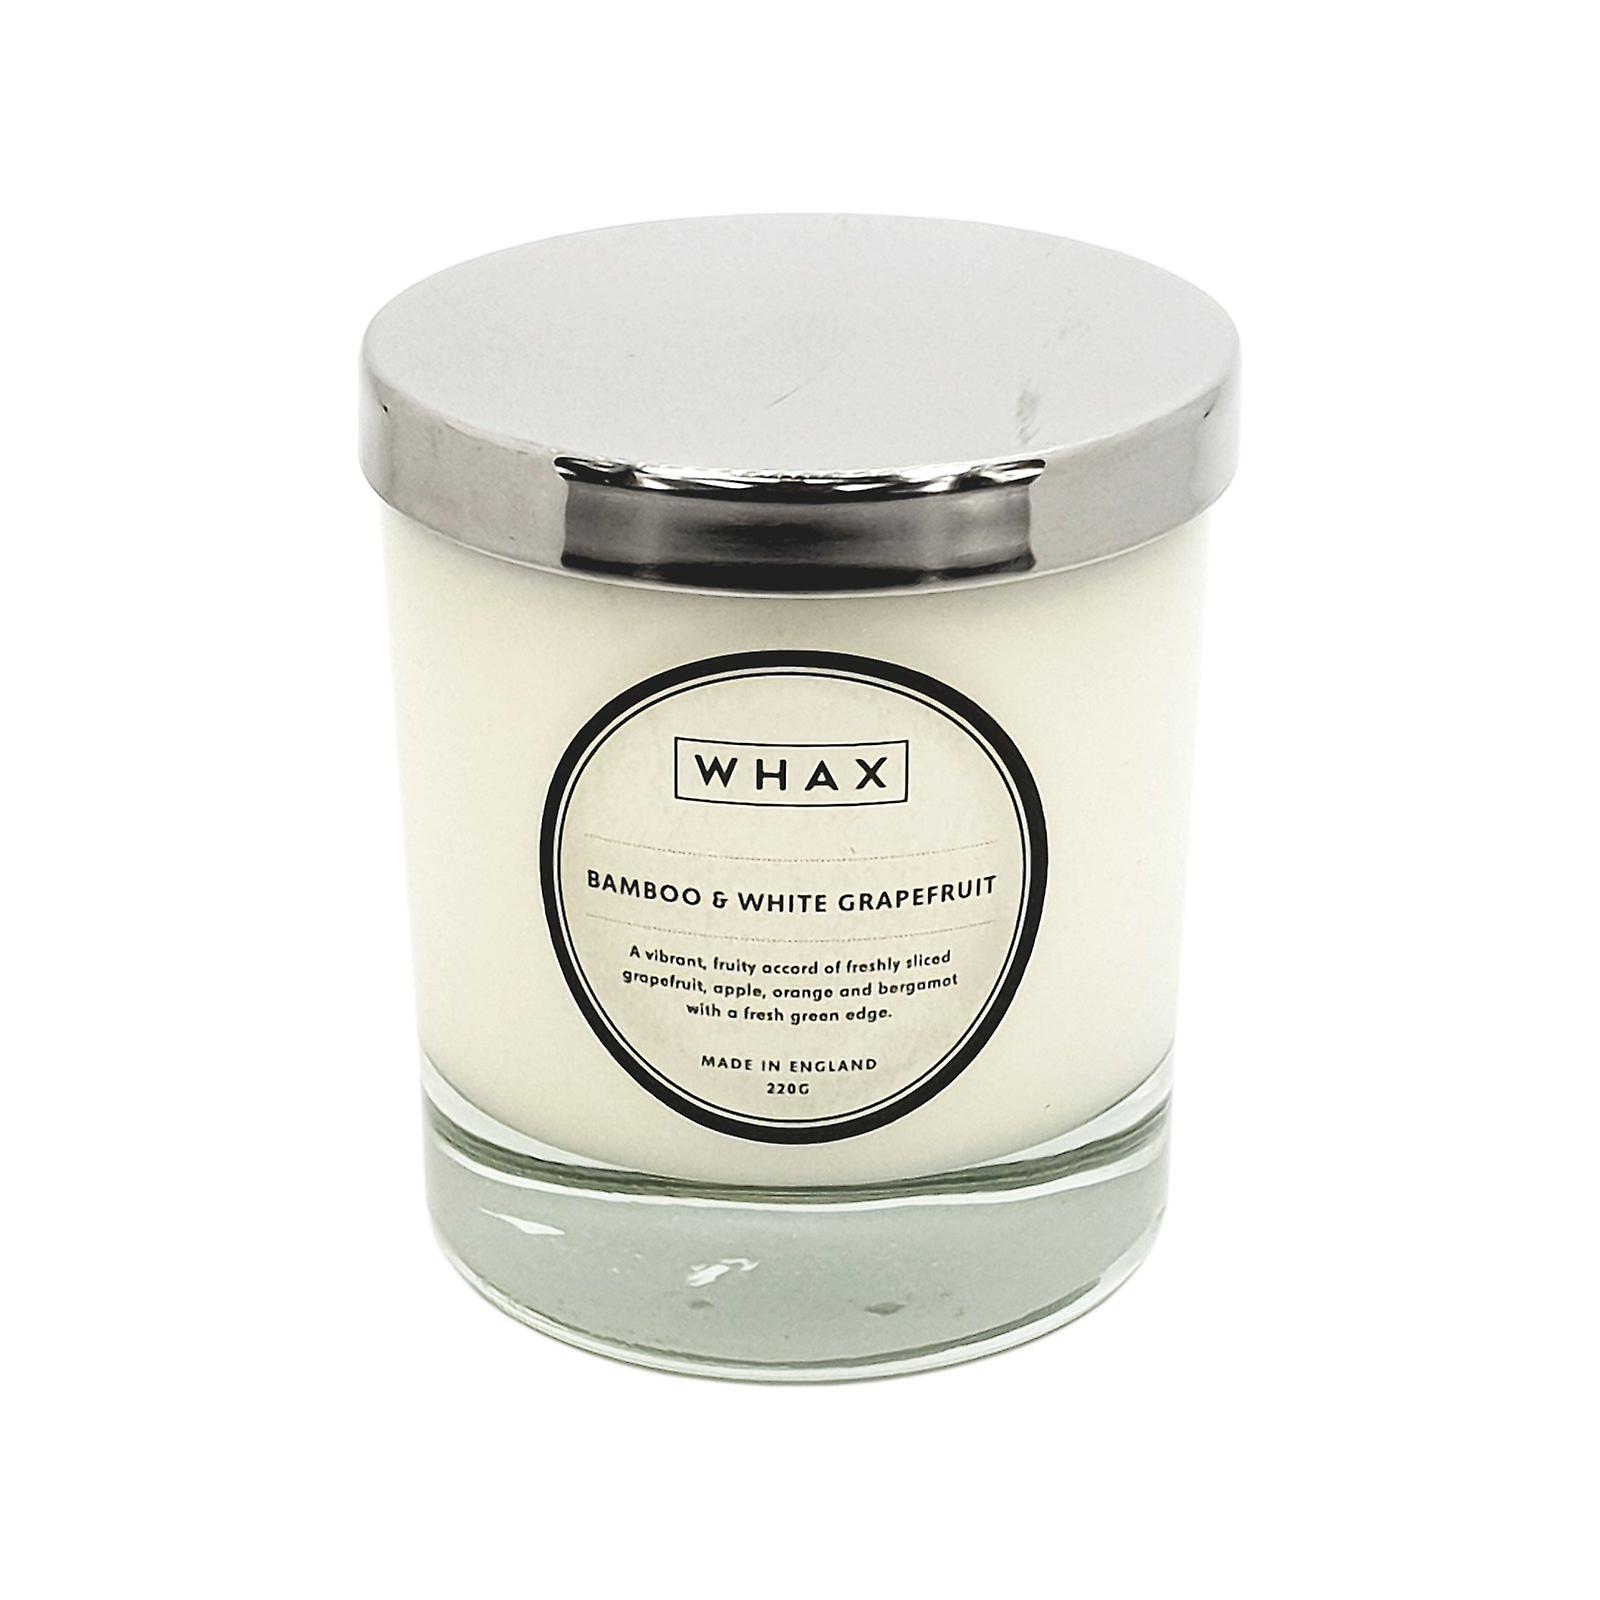 Bamboo & white grapefruit scented candle